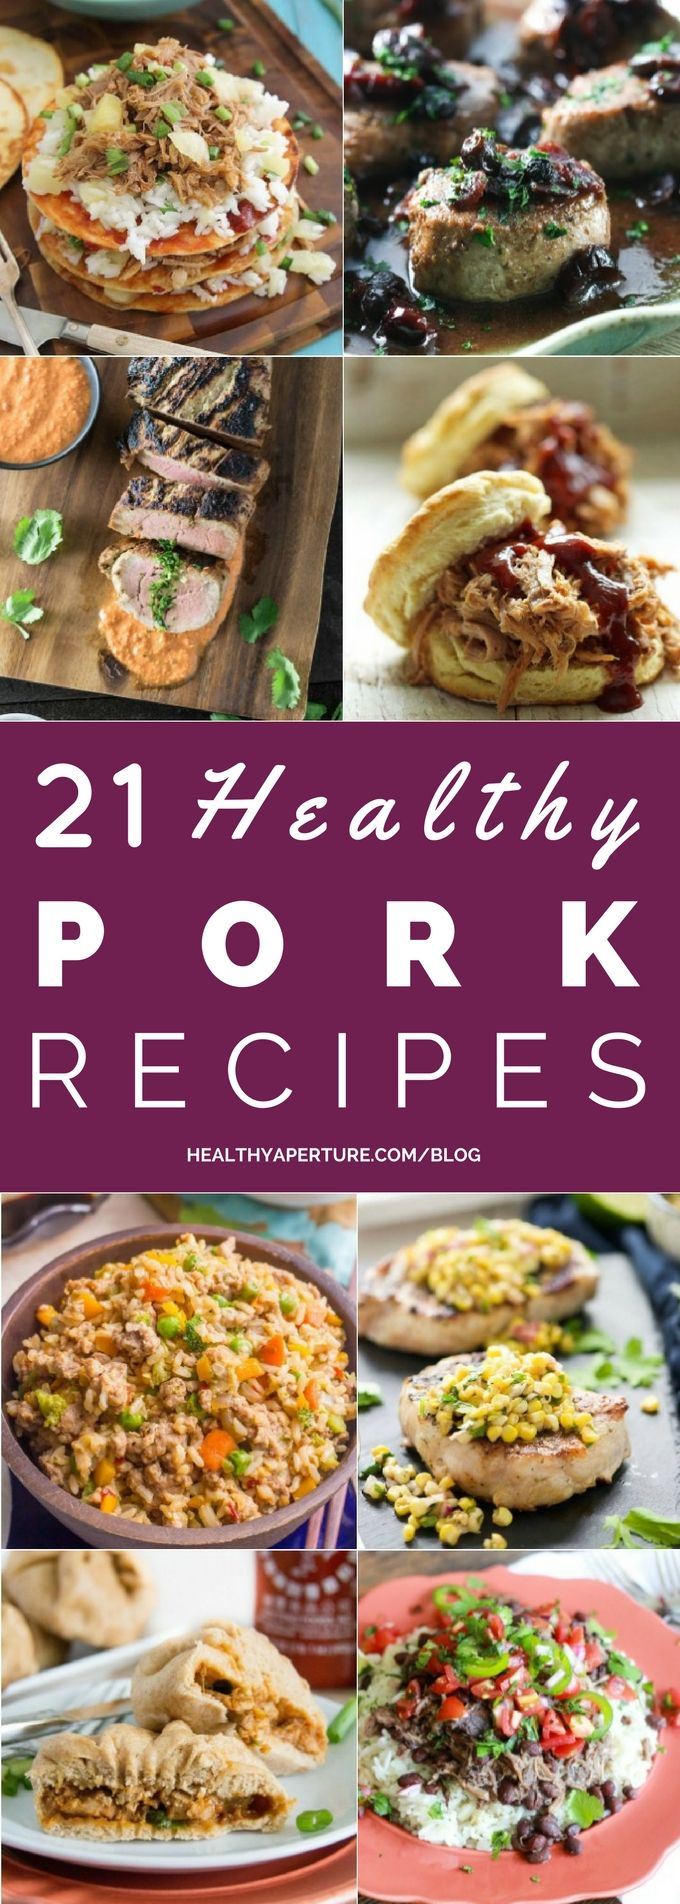 If you're tired of chicken and beef but need something new for your meal plan, check out these 21 Healthy Pork Dinner Recipes